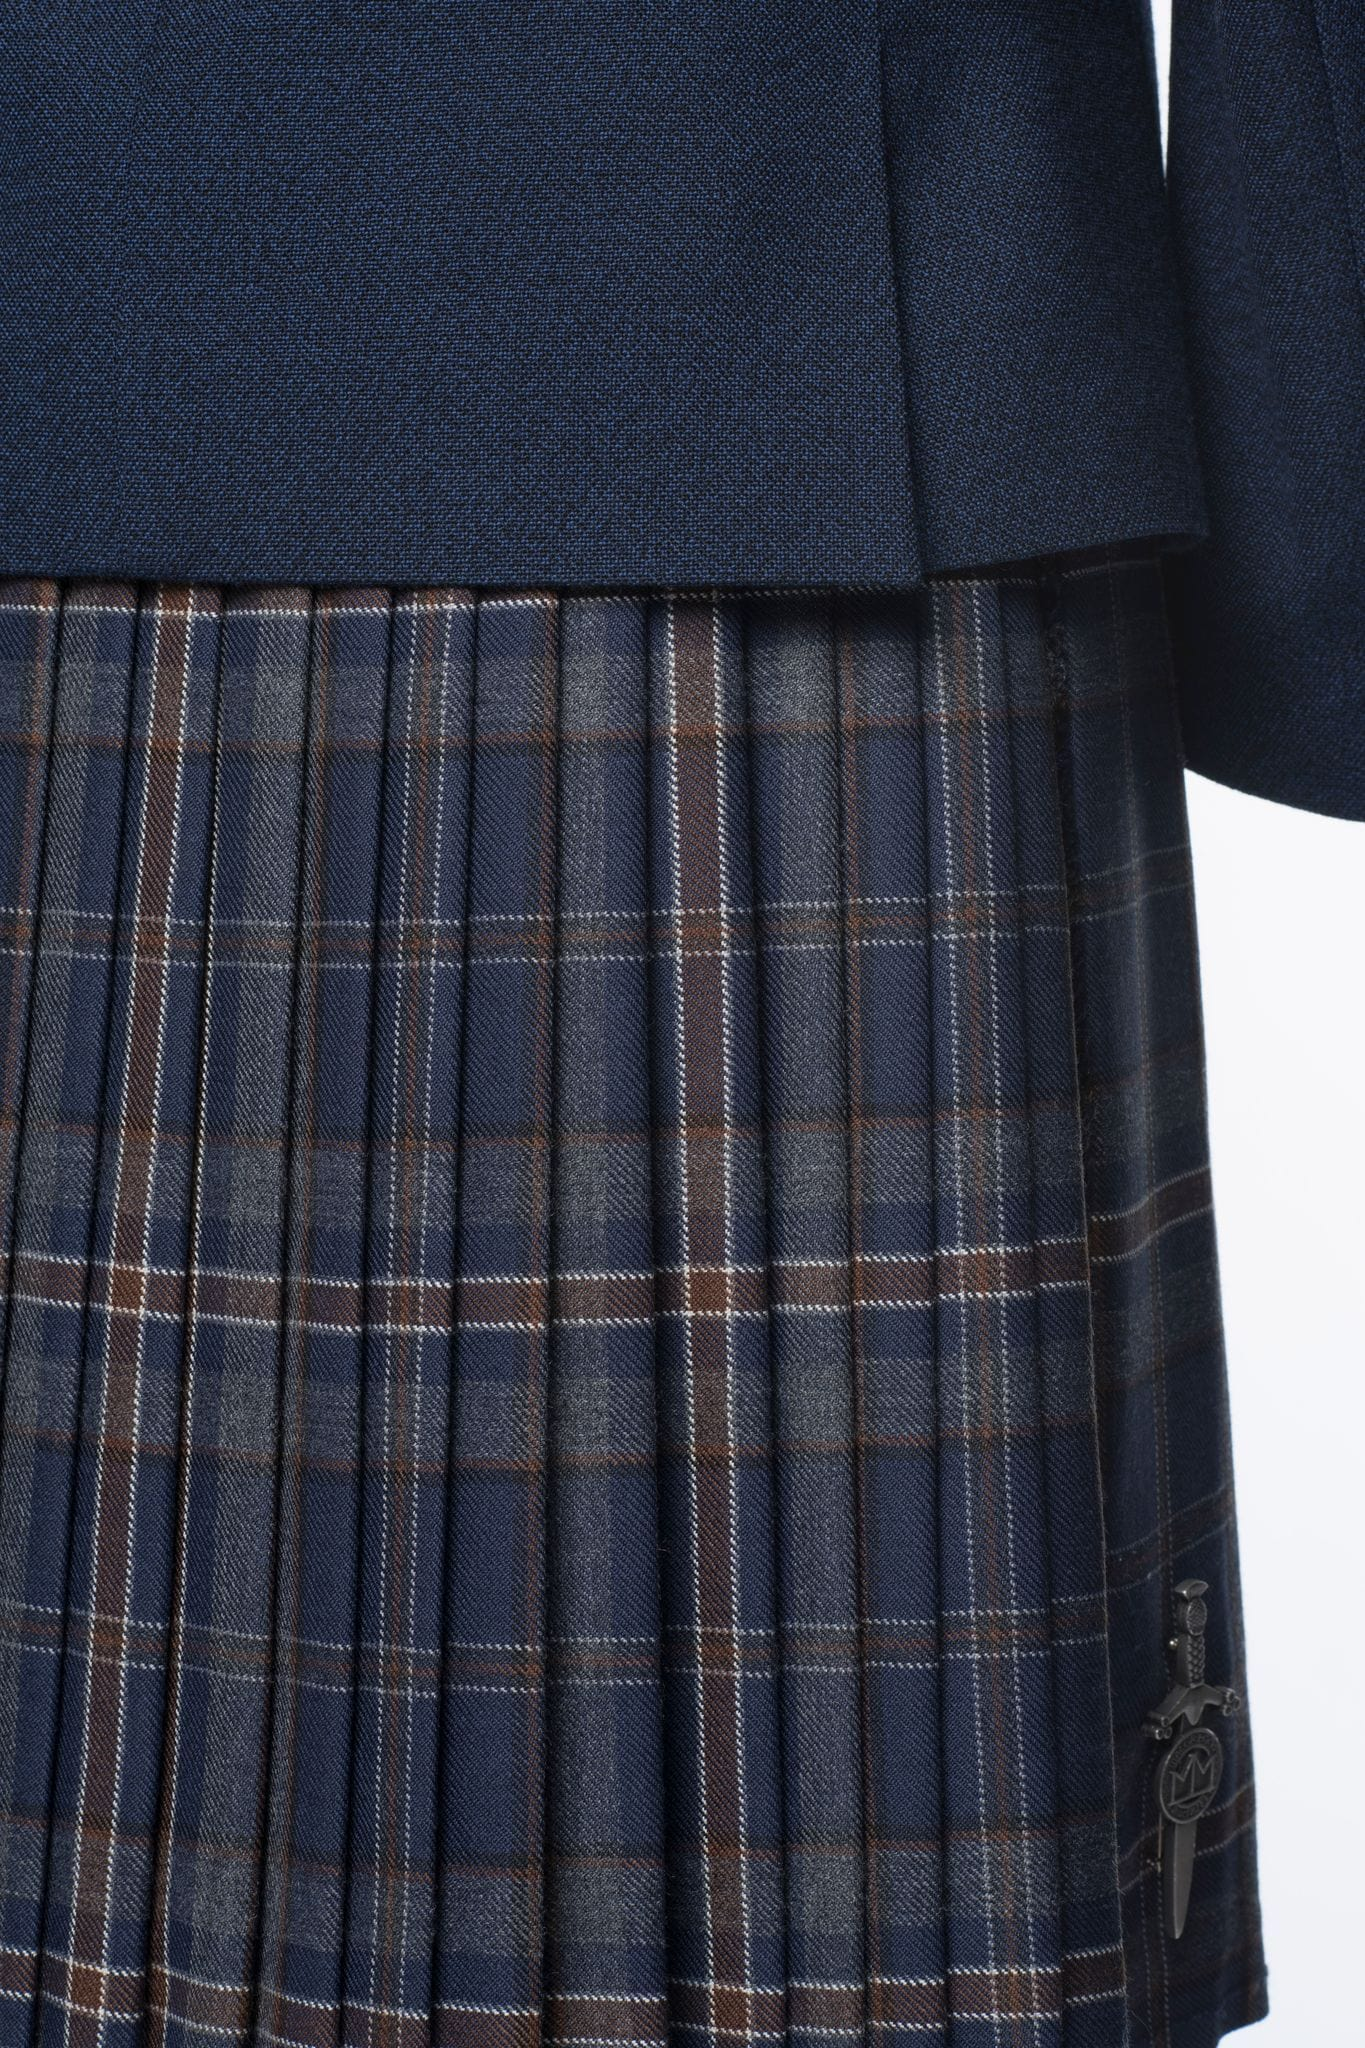 MacGregor MacDuff Made to Measure Arran Mist Kilt